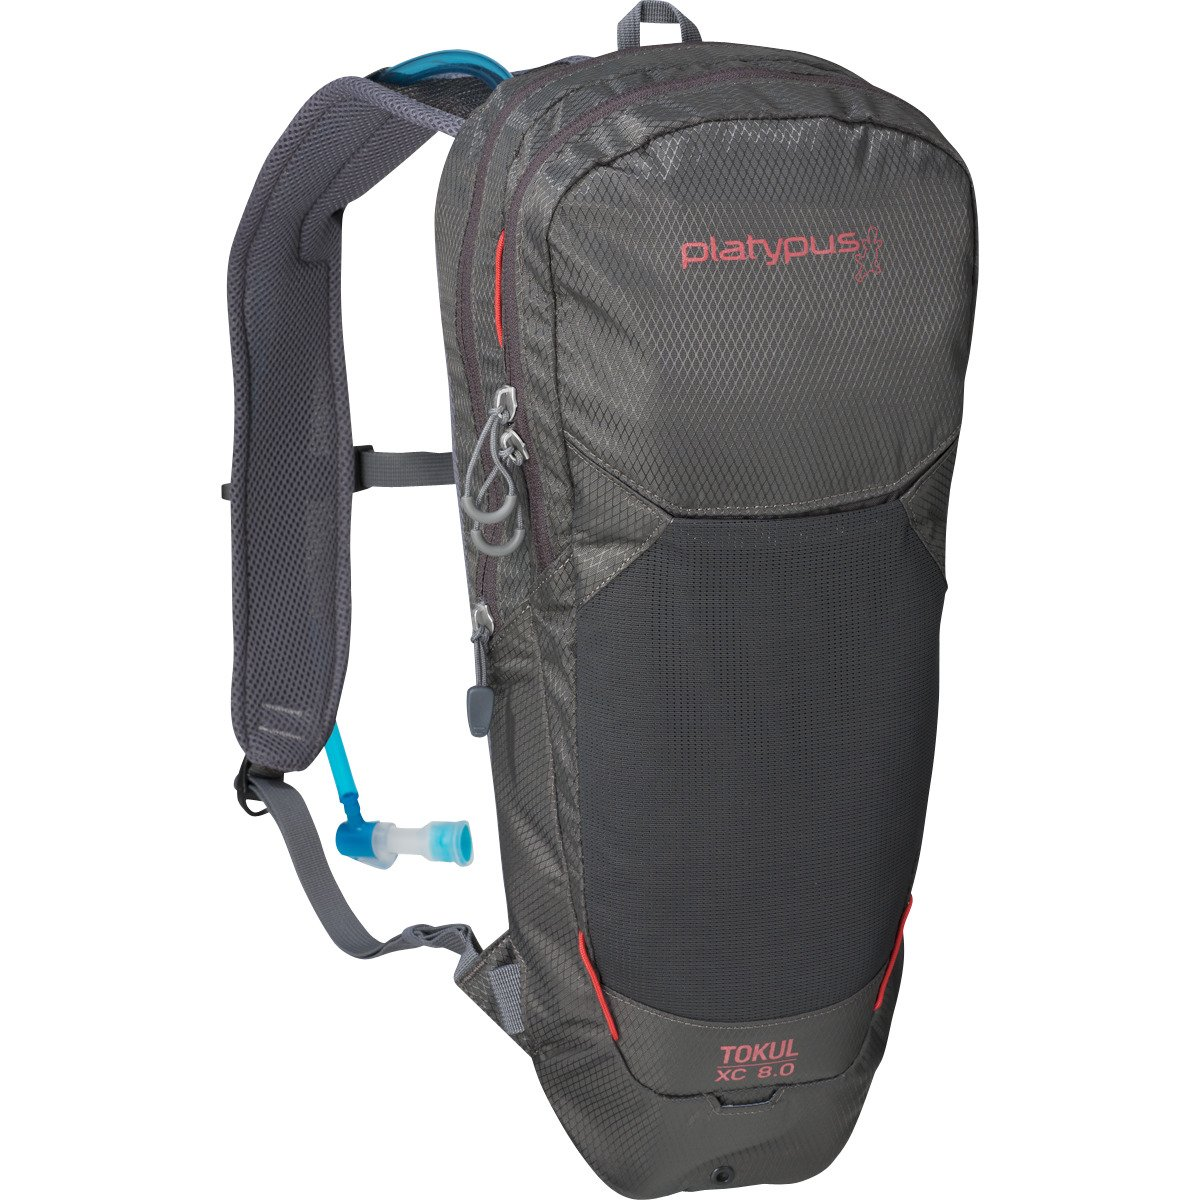 c0335389328 Amazon.com : Platypus Tokul X.C. 8.0 Hydration Pack (2015 Model), Molten  Lava : Sports & Outdoors